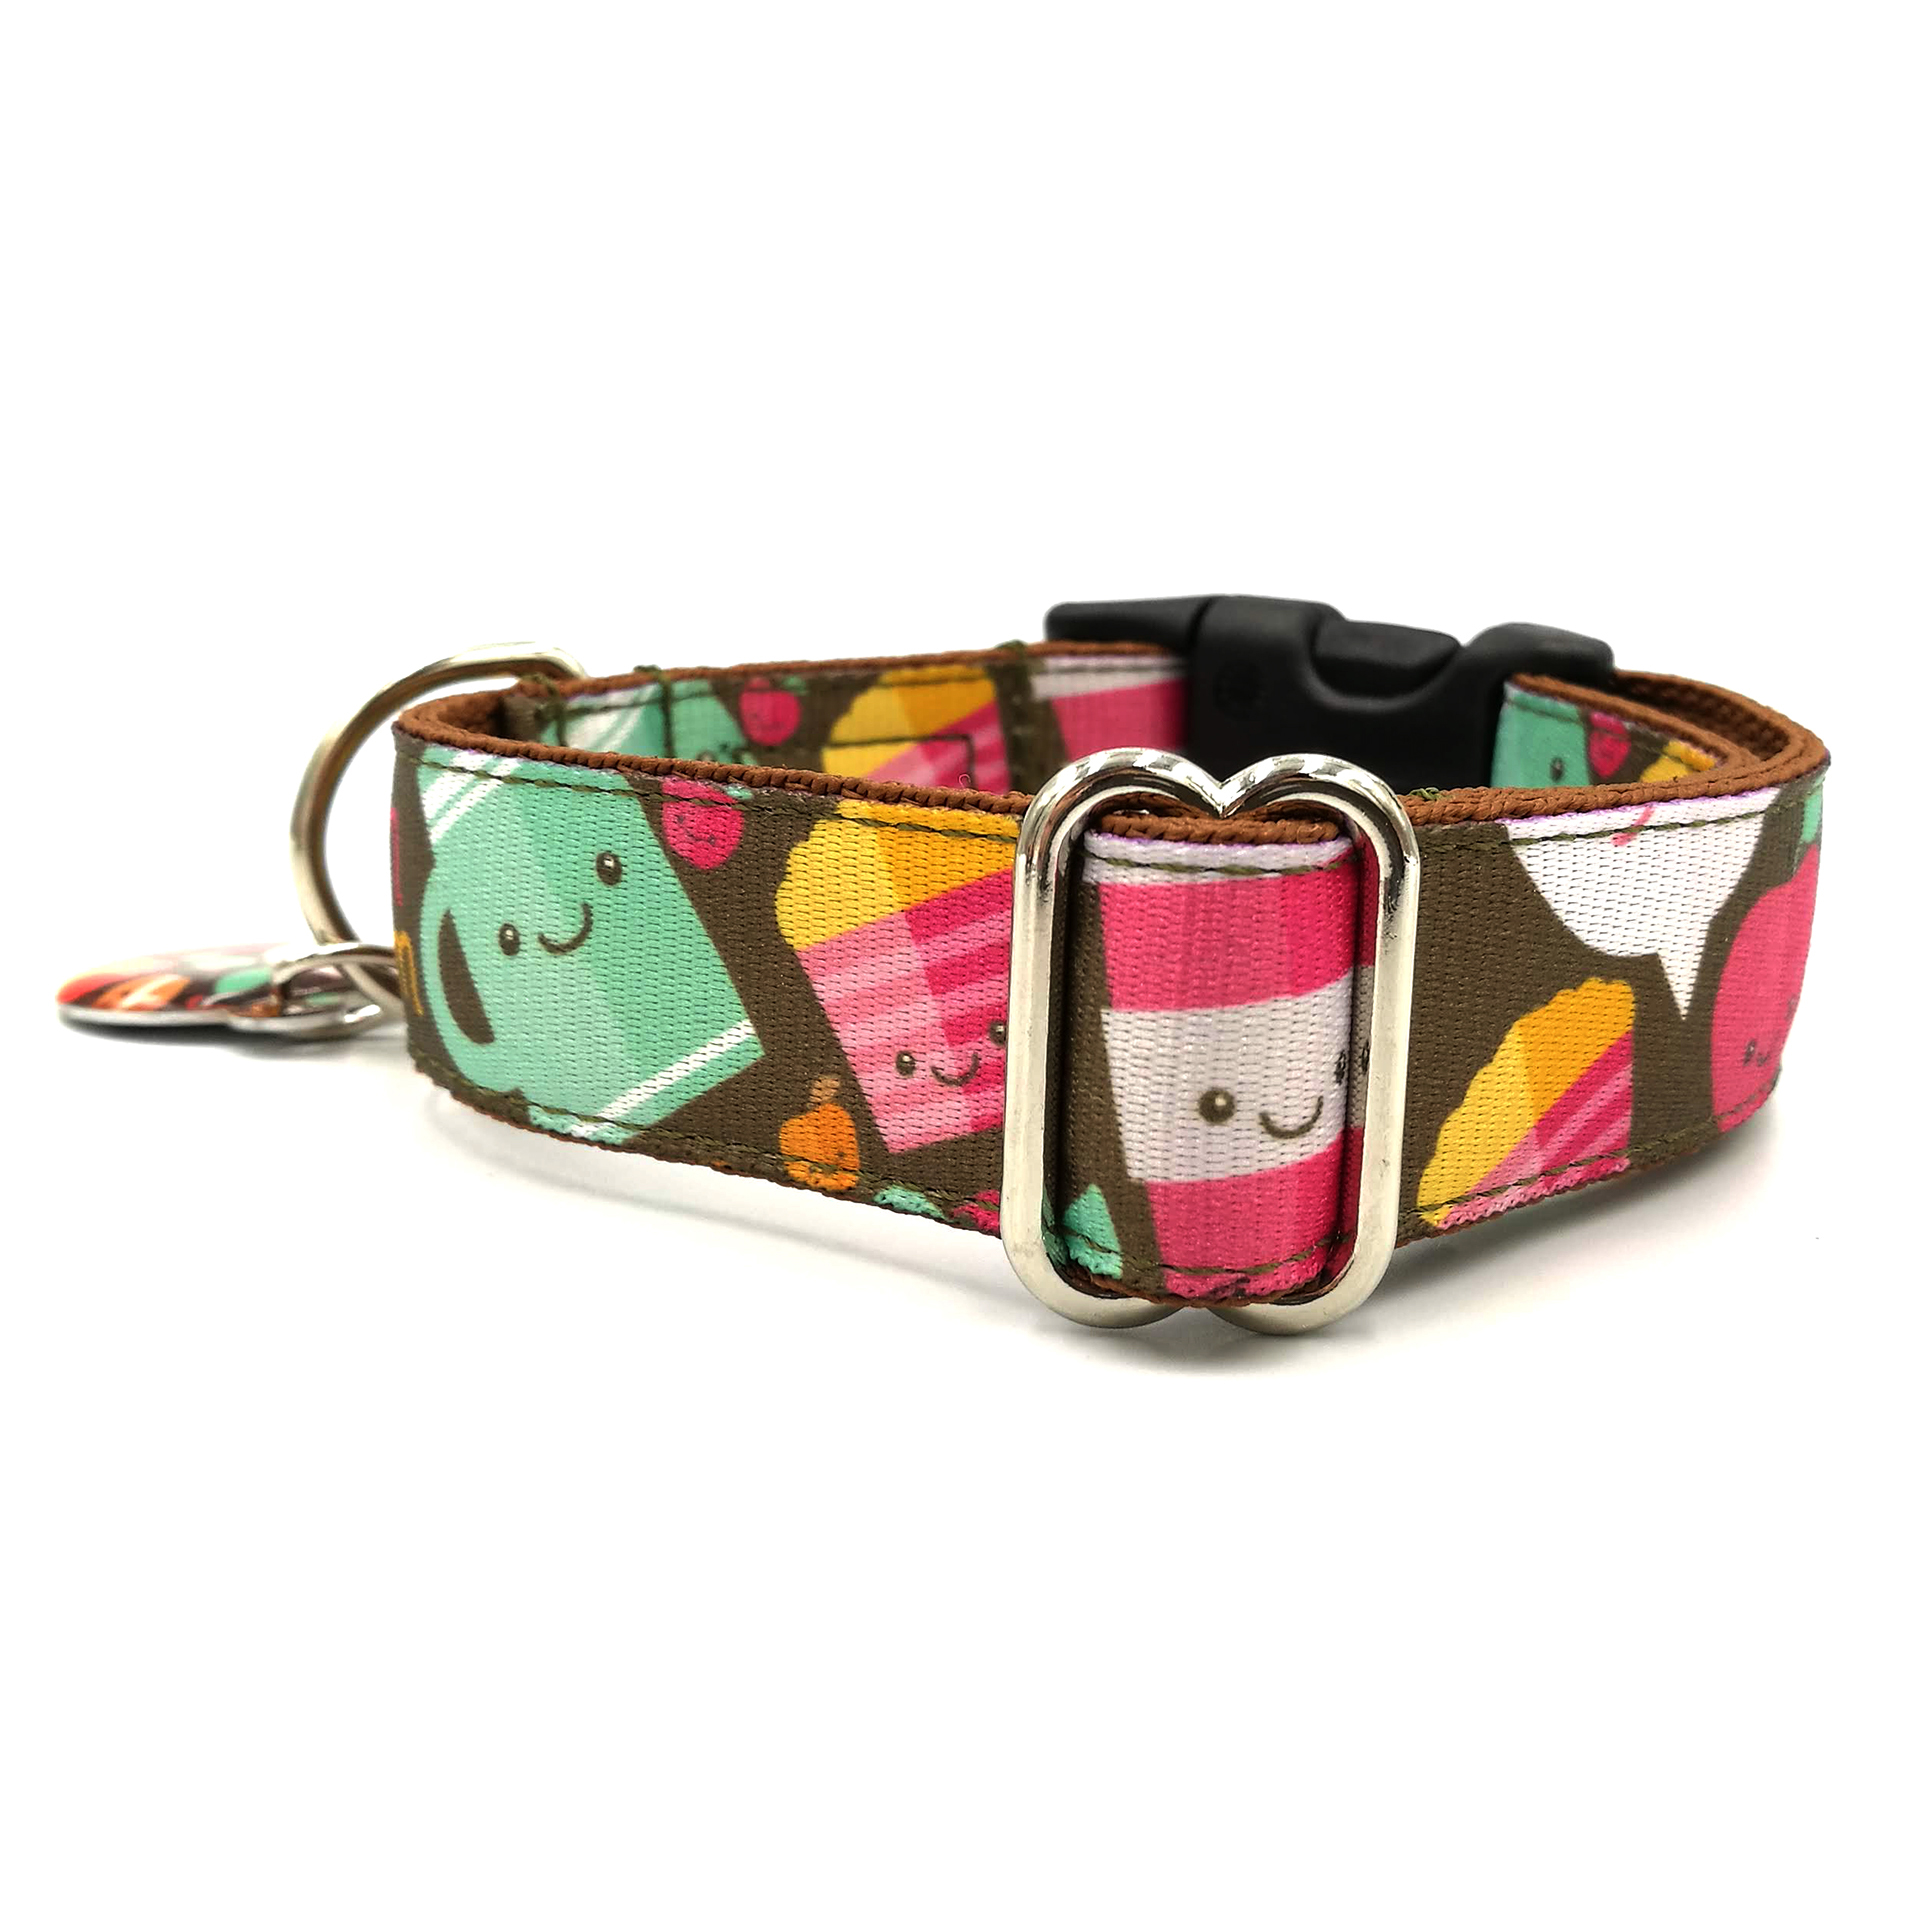 Coffe&Muffins dog collar